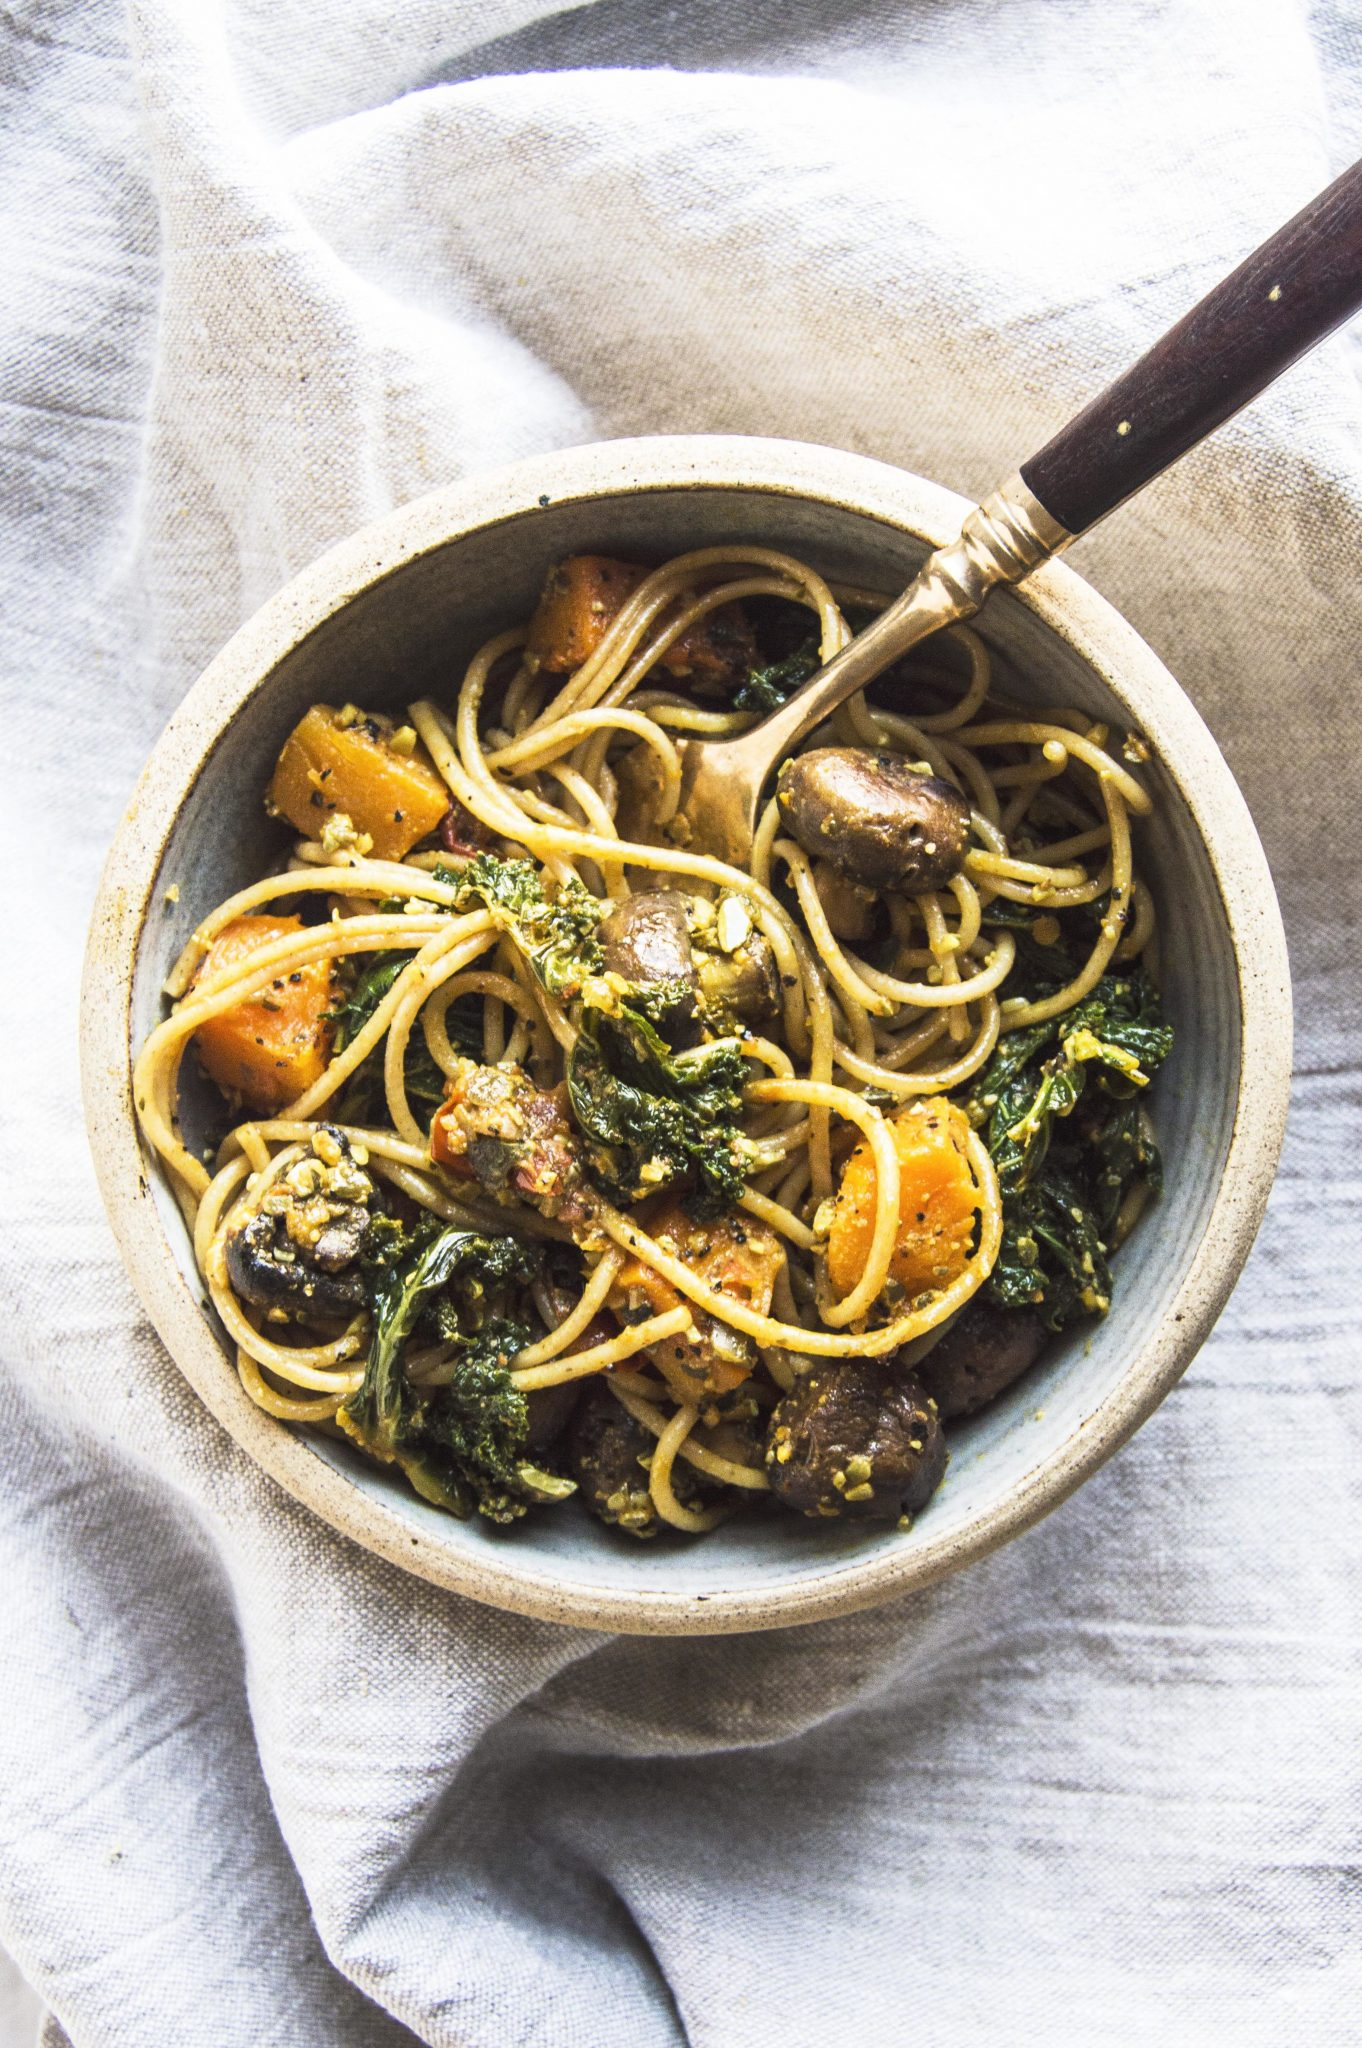 Vegan Winter Vegetable Pasta with Pumpkin Seed Pesto